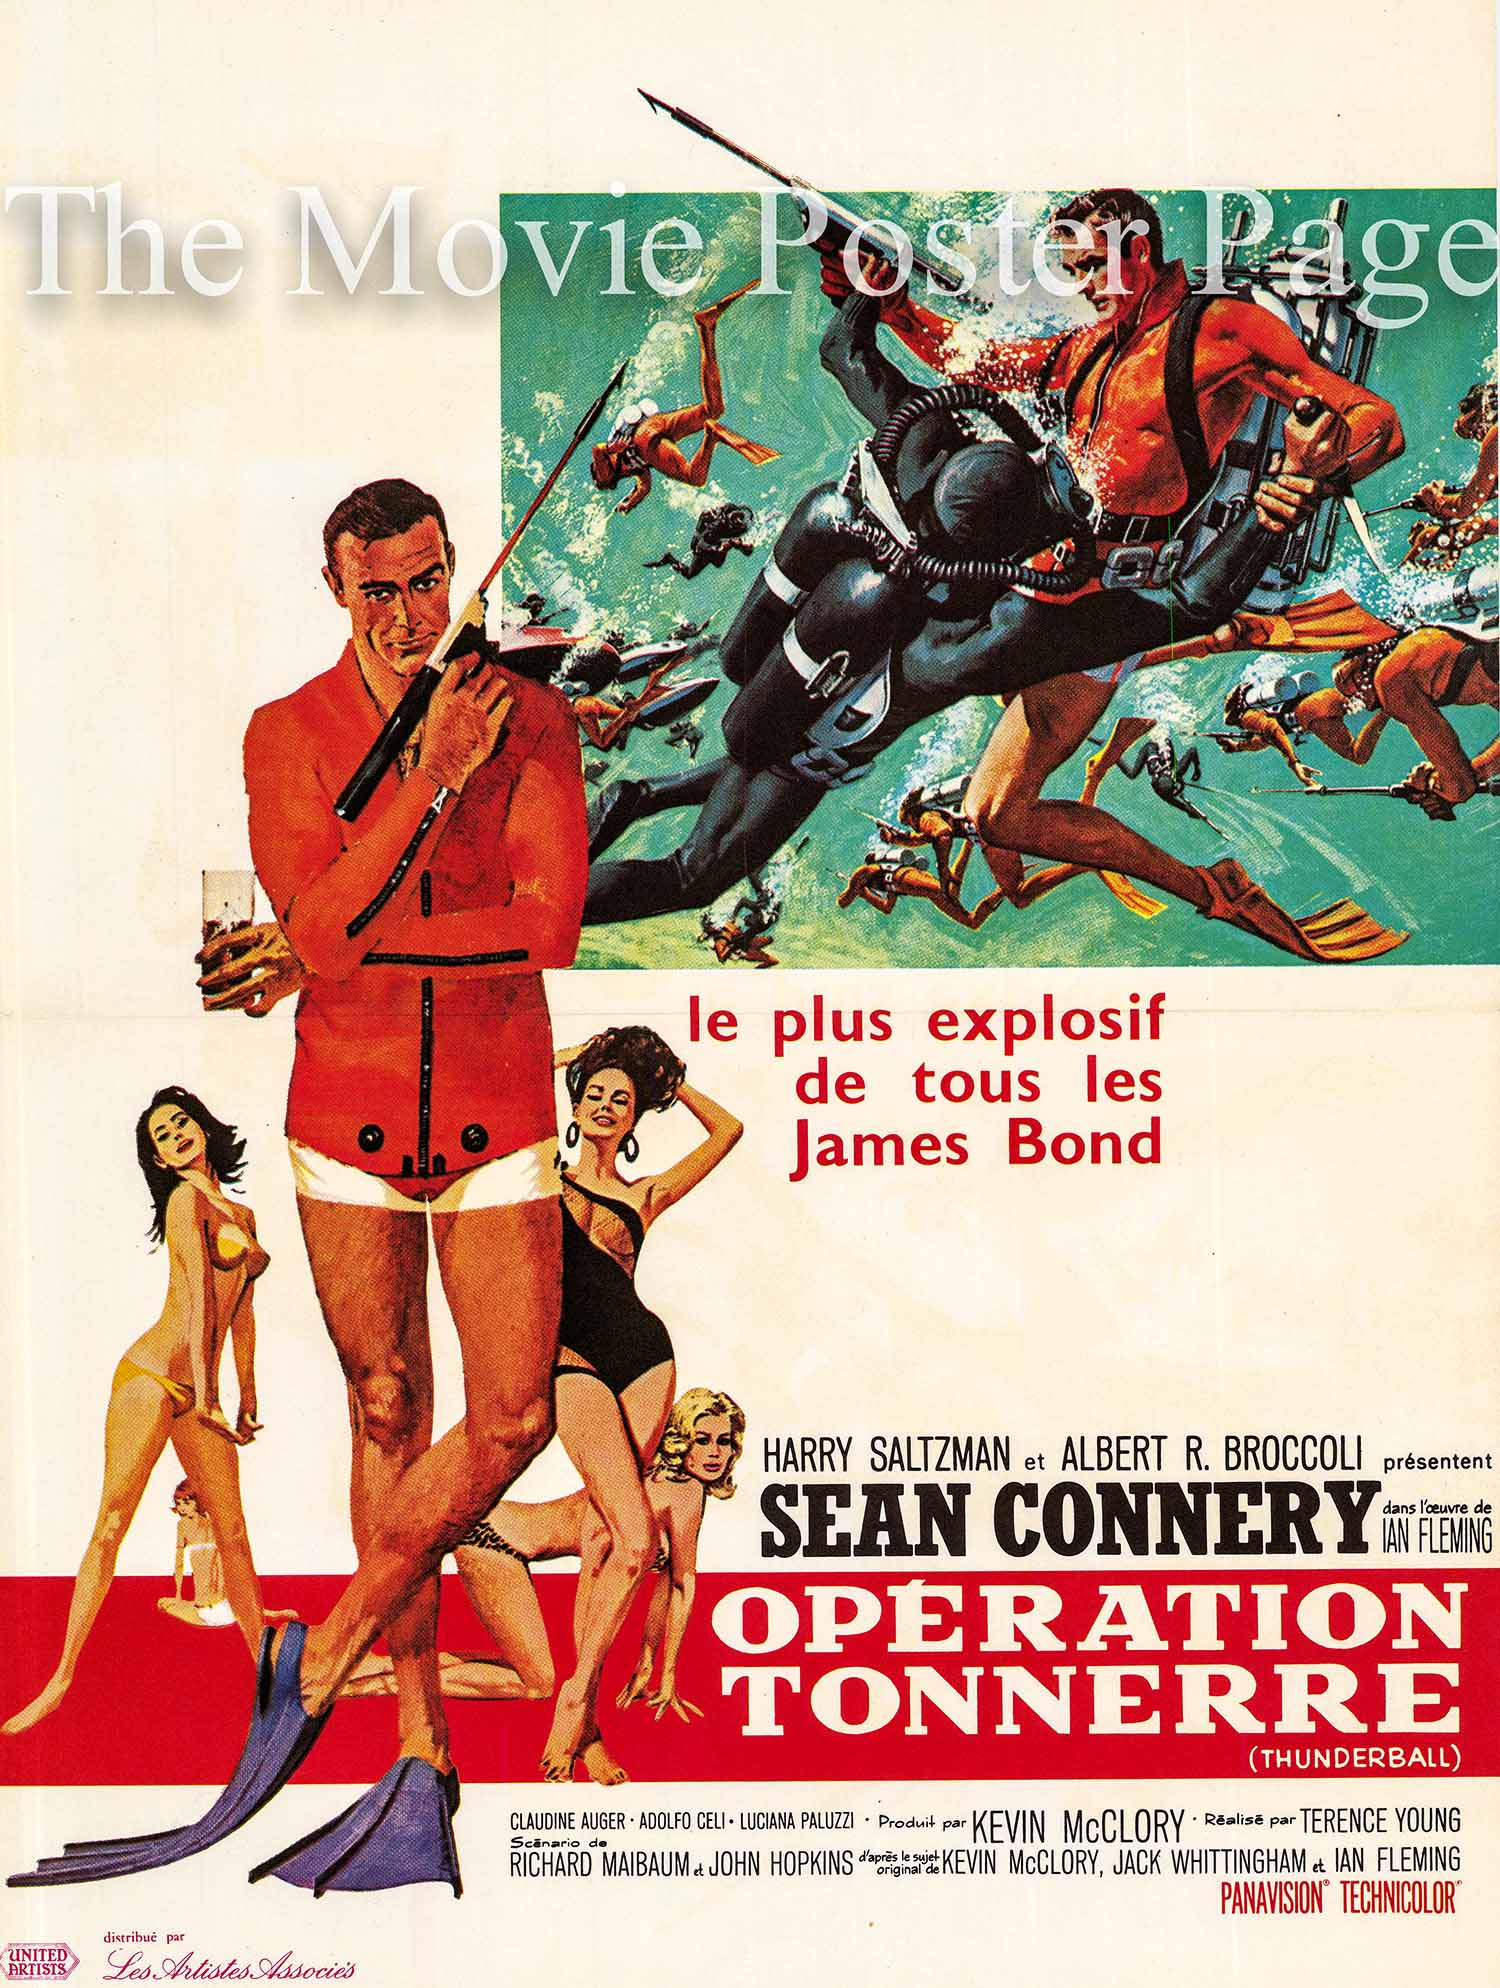 Pictured is a French mini poster made to promote the 1965 Terence Young film Thunderball starring Sean Connery as James Bond.